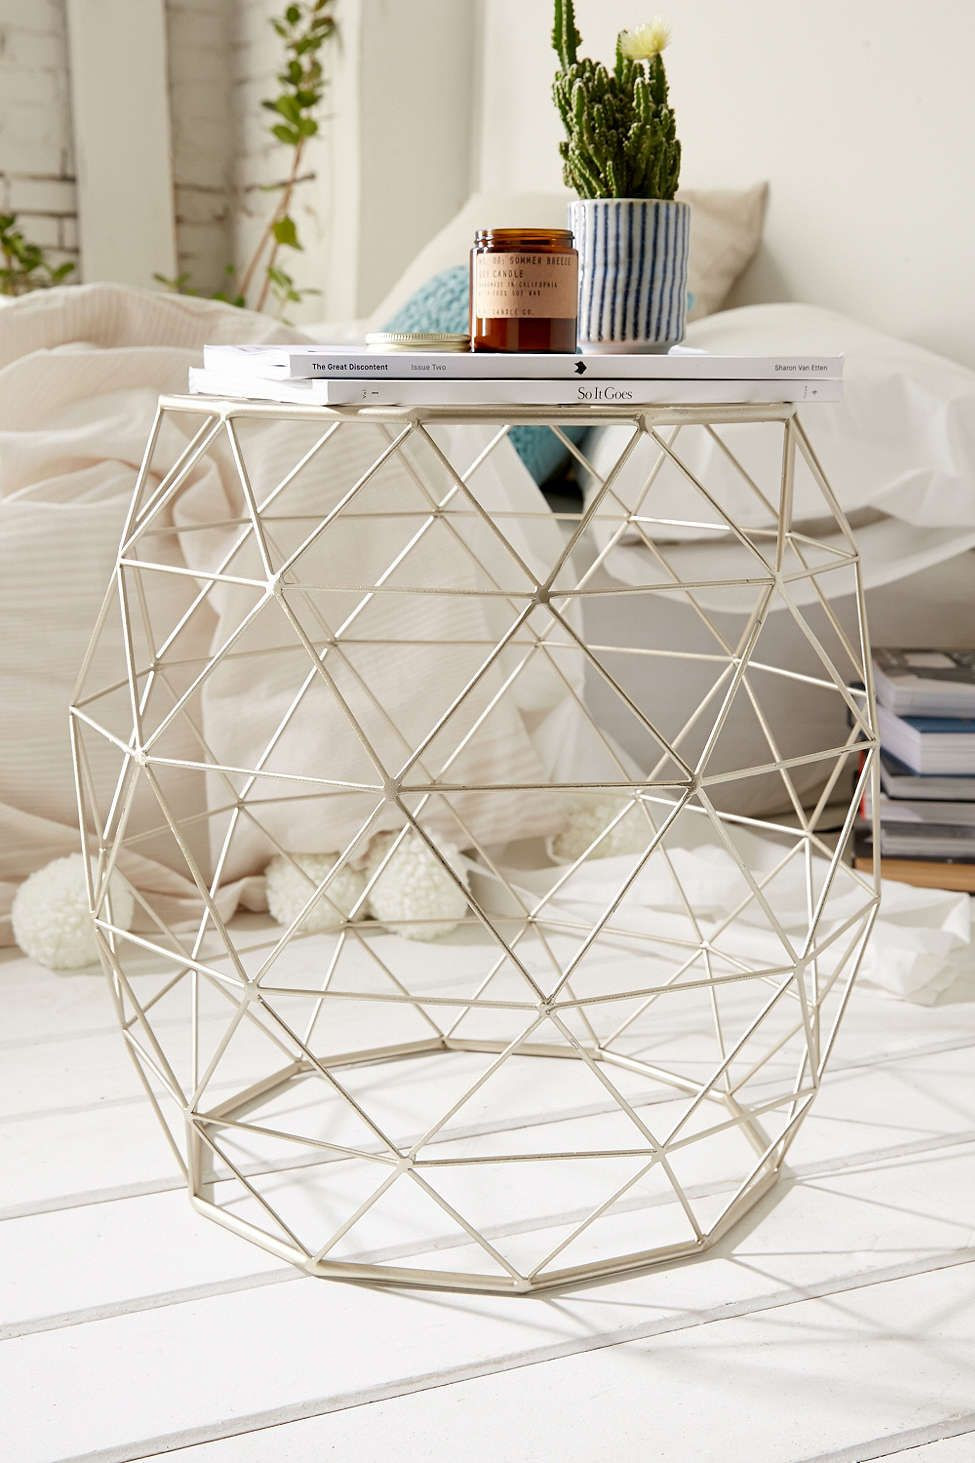 28 Perfect Geometric Wire Vase 2021 free download geometric wire vase of geometric metal side table uohome pinterest metal side table in geometric metal side table urban outfitters